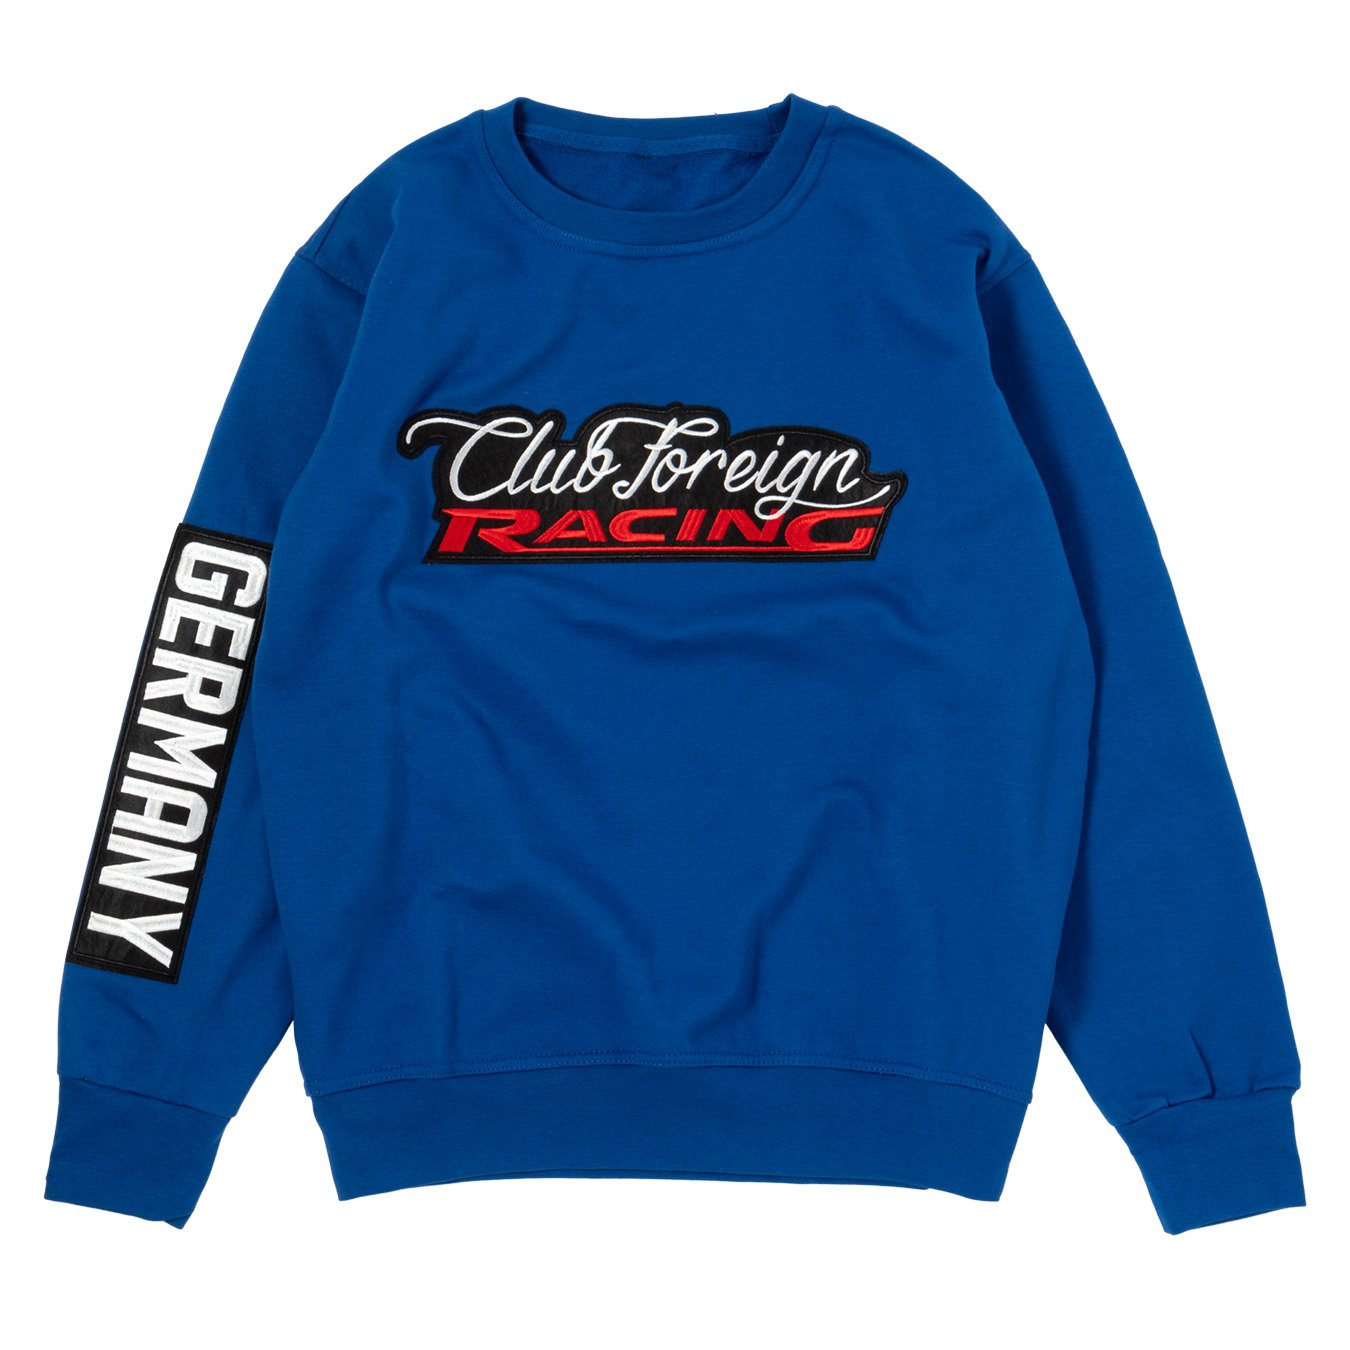 ClubForeign Racing Crew Blue